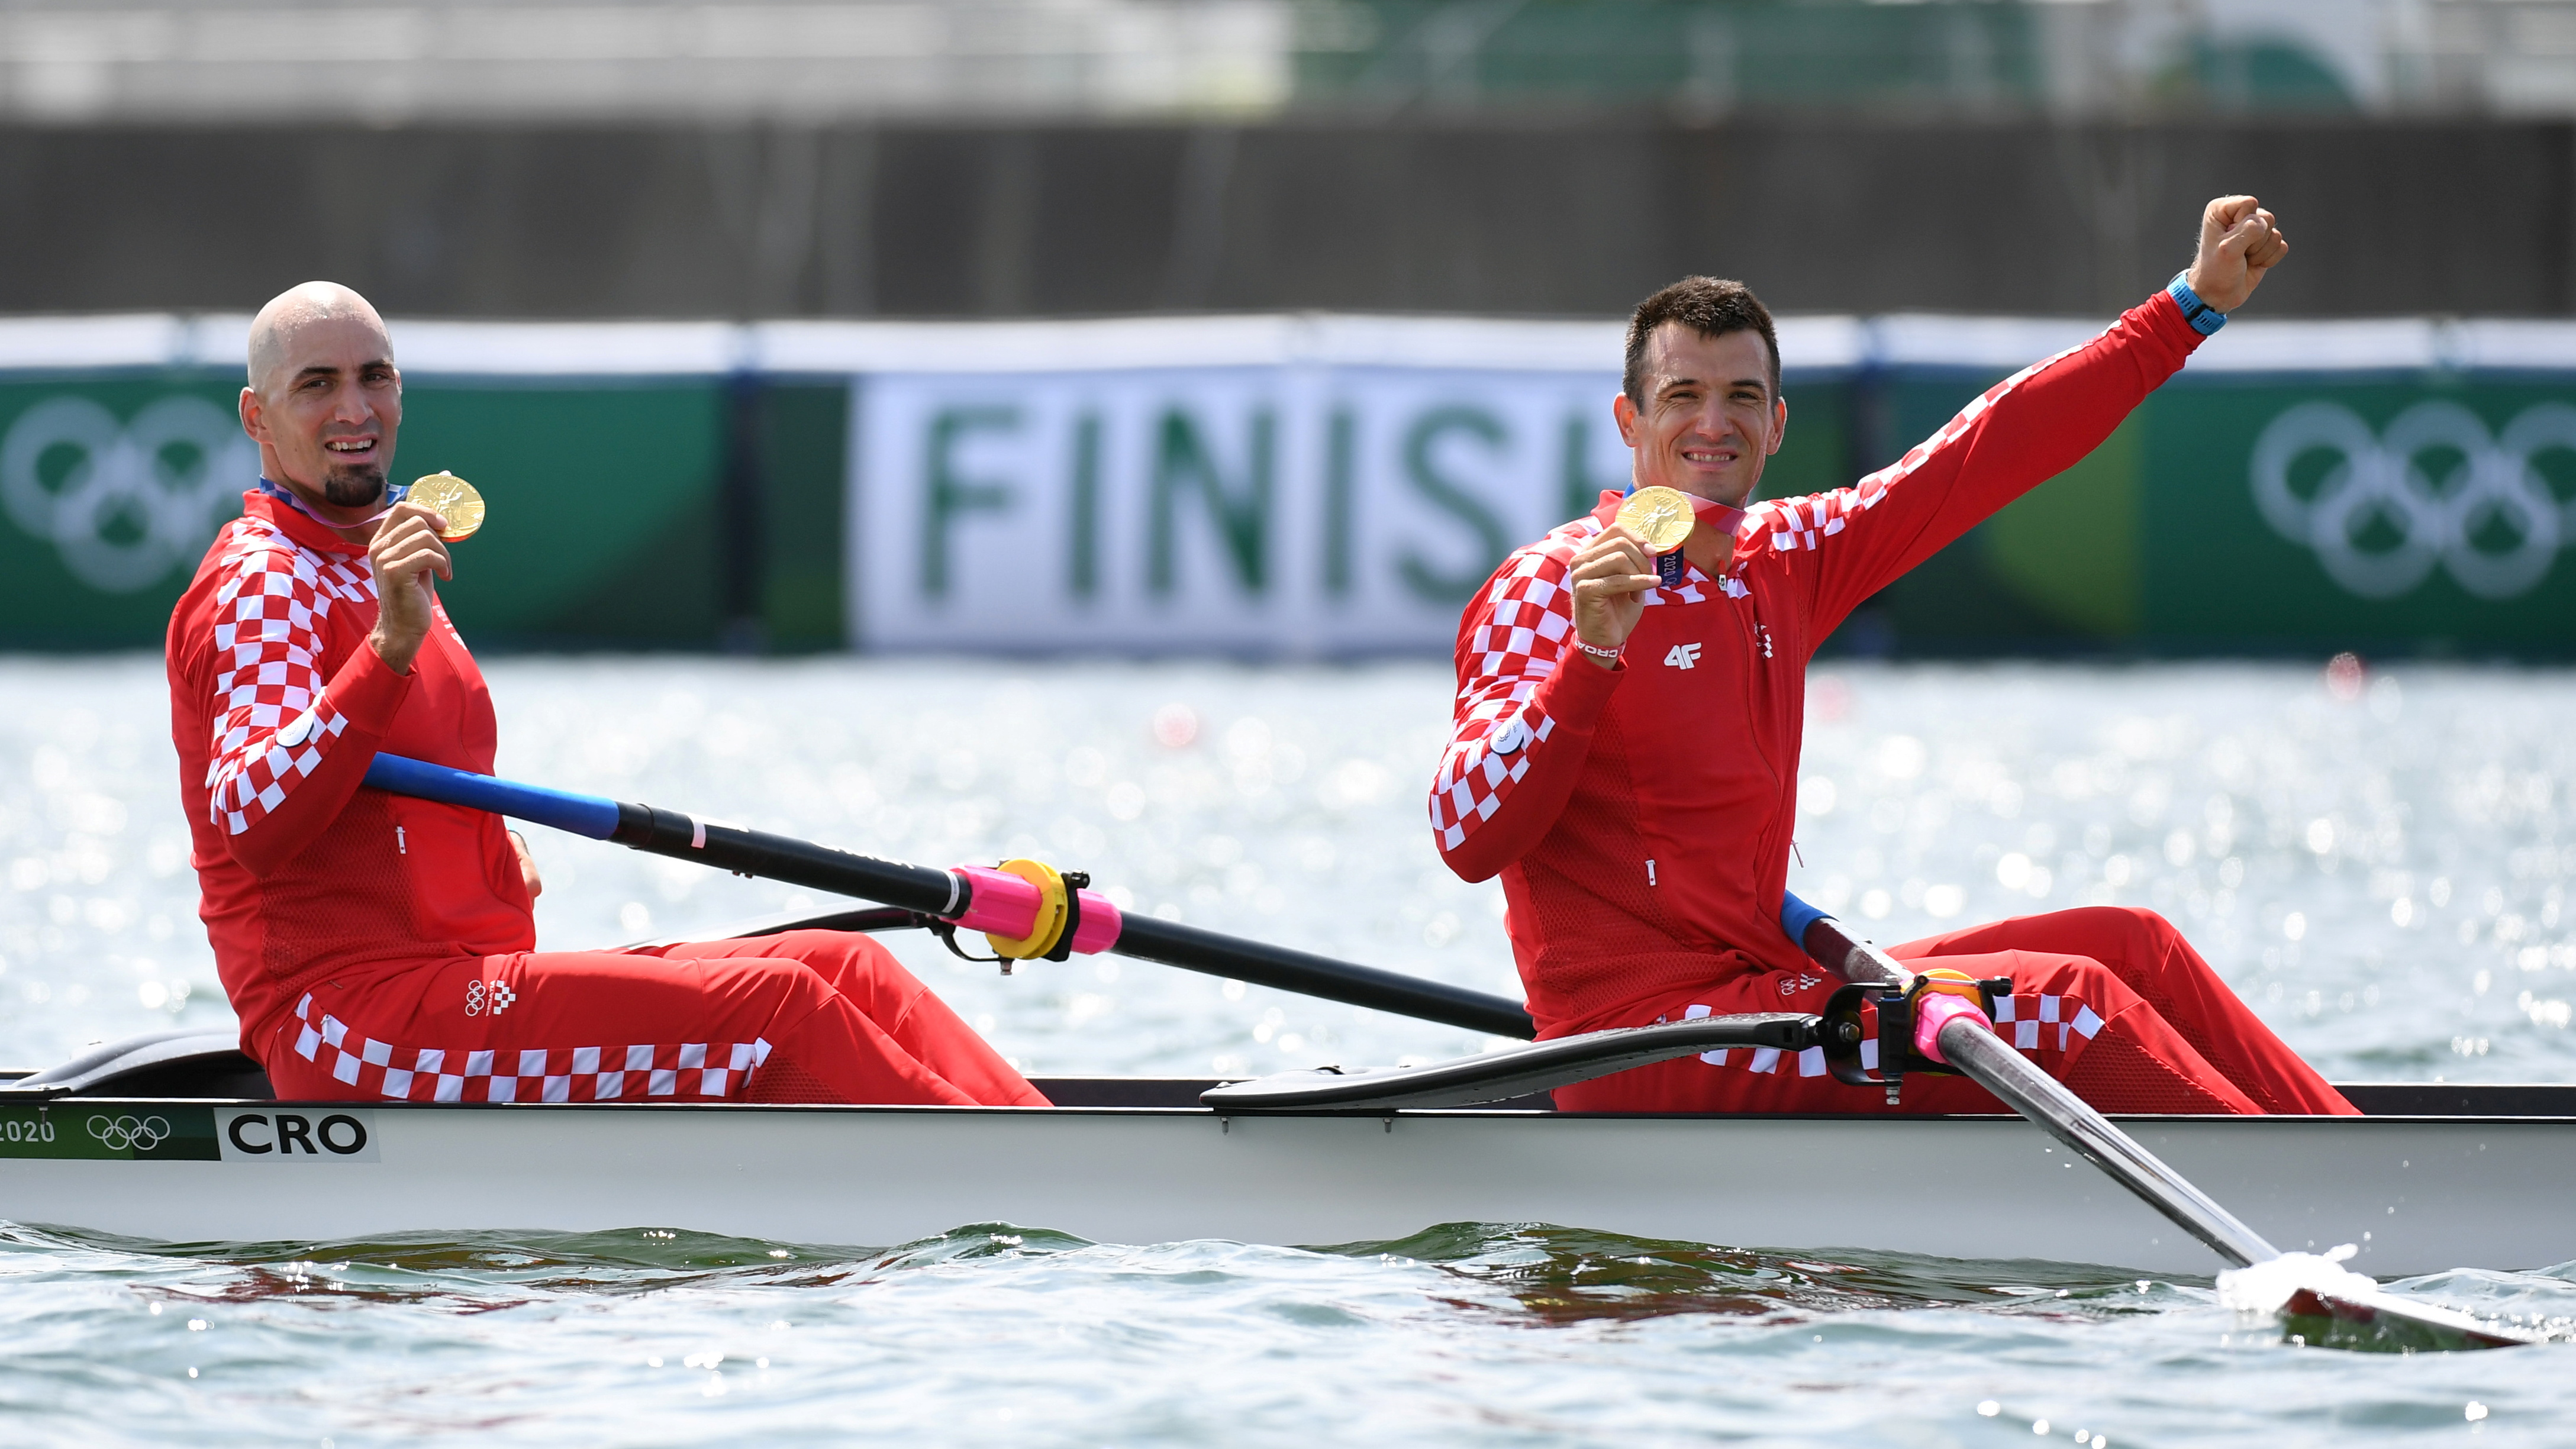 Tokyo 2020 Olympics - Rowing - Men's Pair - Medal Ceremony - Sea Forest Waterway, Tokyo, Japan - July 29, 2021 Gold medallists Martin Sinkovic of Croatia and Valent Sinkovic of Croatia celebrate in their boat with their medals REUTERS/Piroschka Van De Wouw